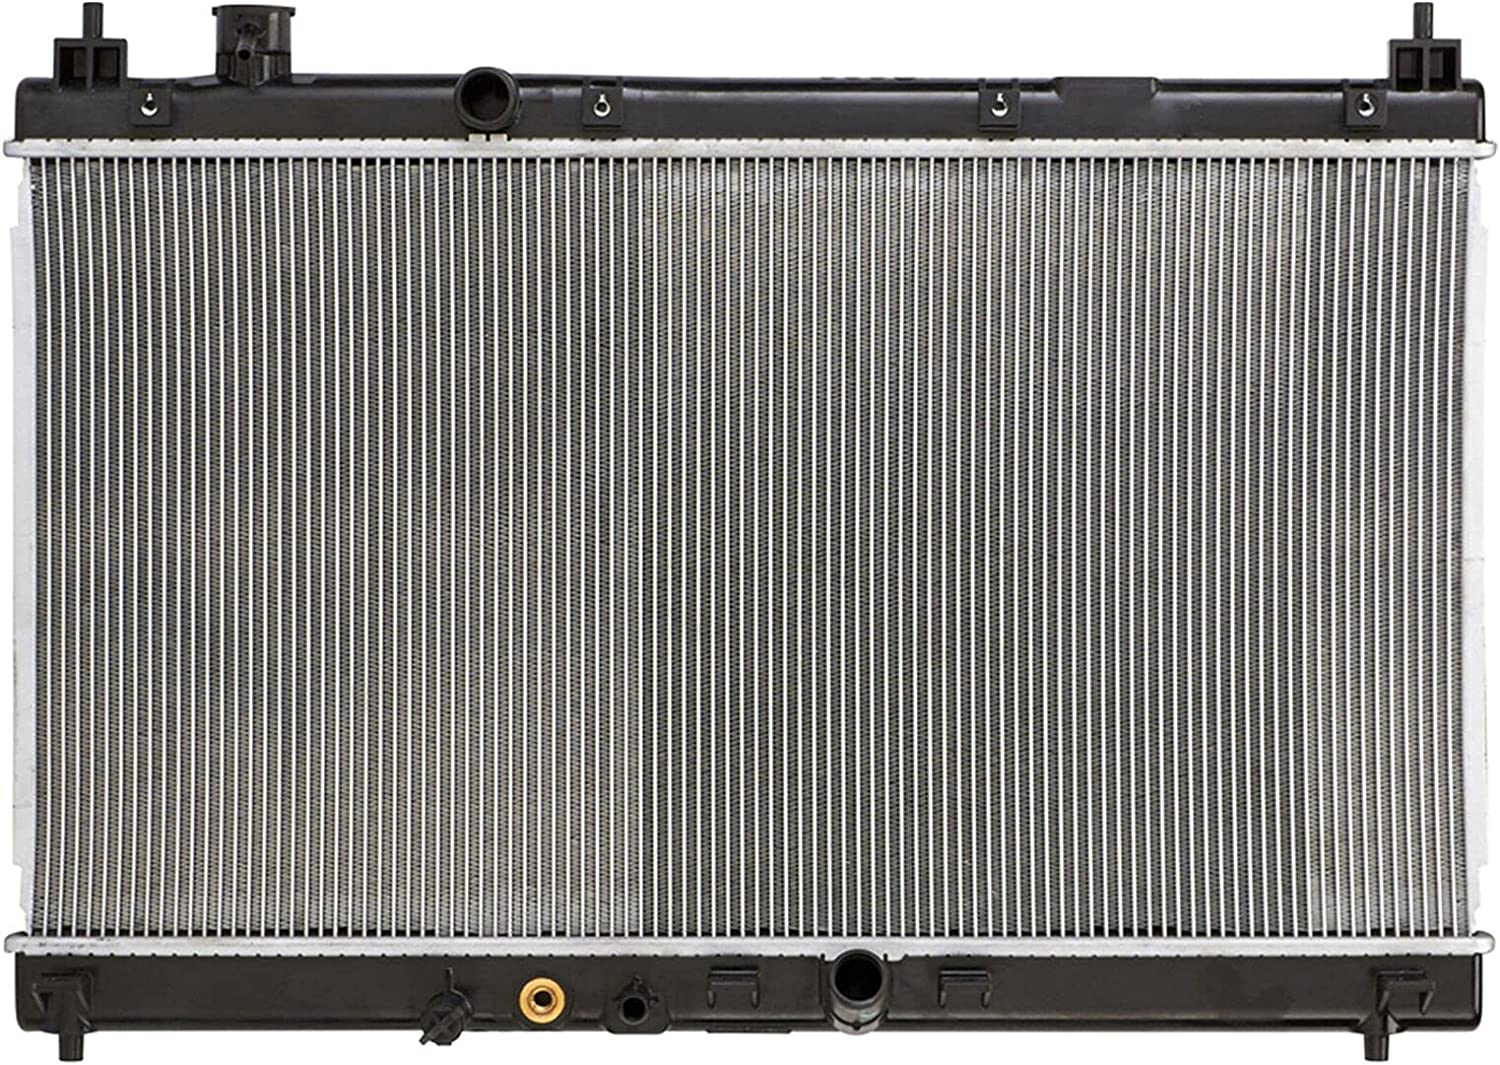 Genuine cheap MGPRO New Replacements Radiator Compatible with SBR134 4CYL 1.5L